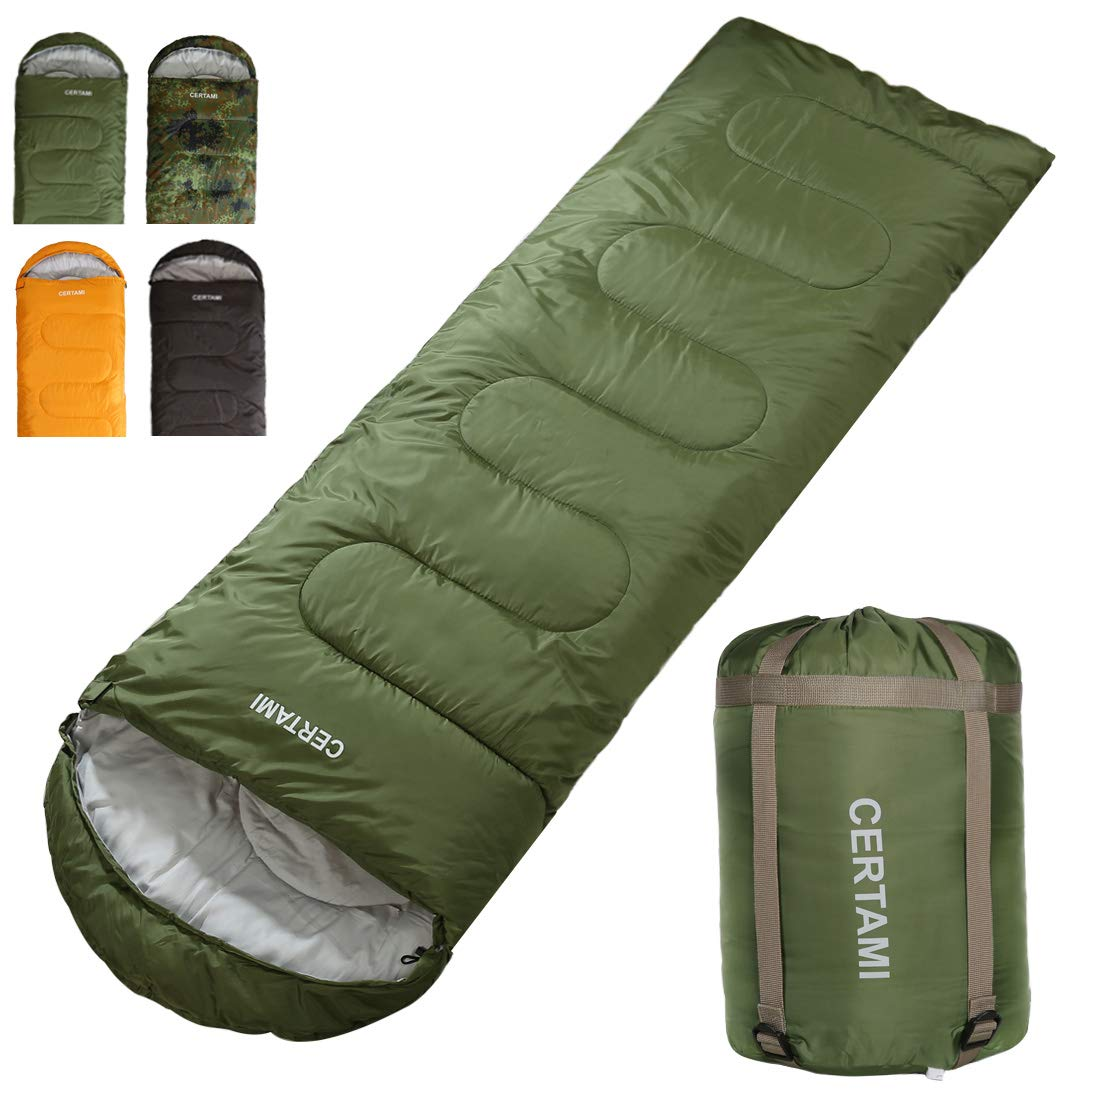 CERTAMI Sleeping Bag for Adults, Girls & Boys, Lightweight Waterproof Compact, Great for 4 Season Warm & Cold Weather, Perfect for Outdoor Backpacking, Camping, Hiking. (Army Green/Left Zip) by CERTAMI